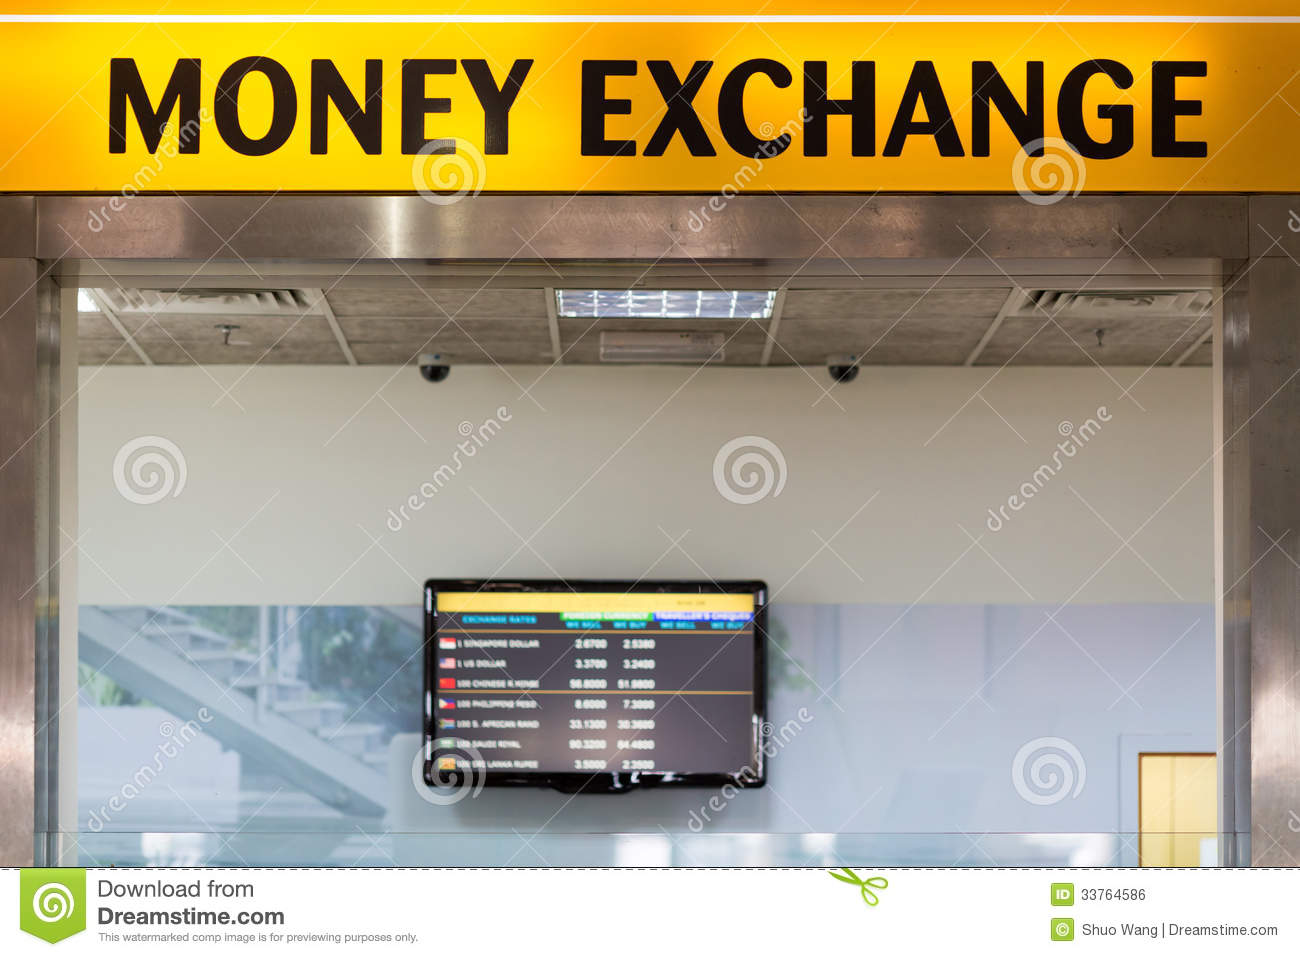 Making money on currency exchange